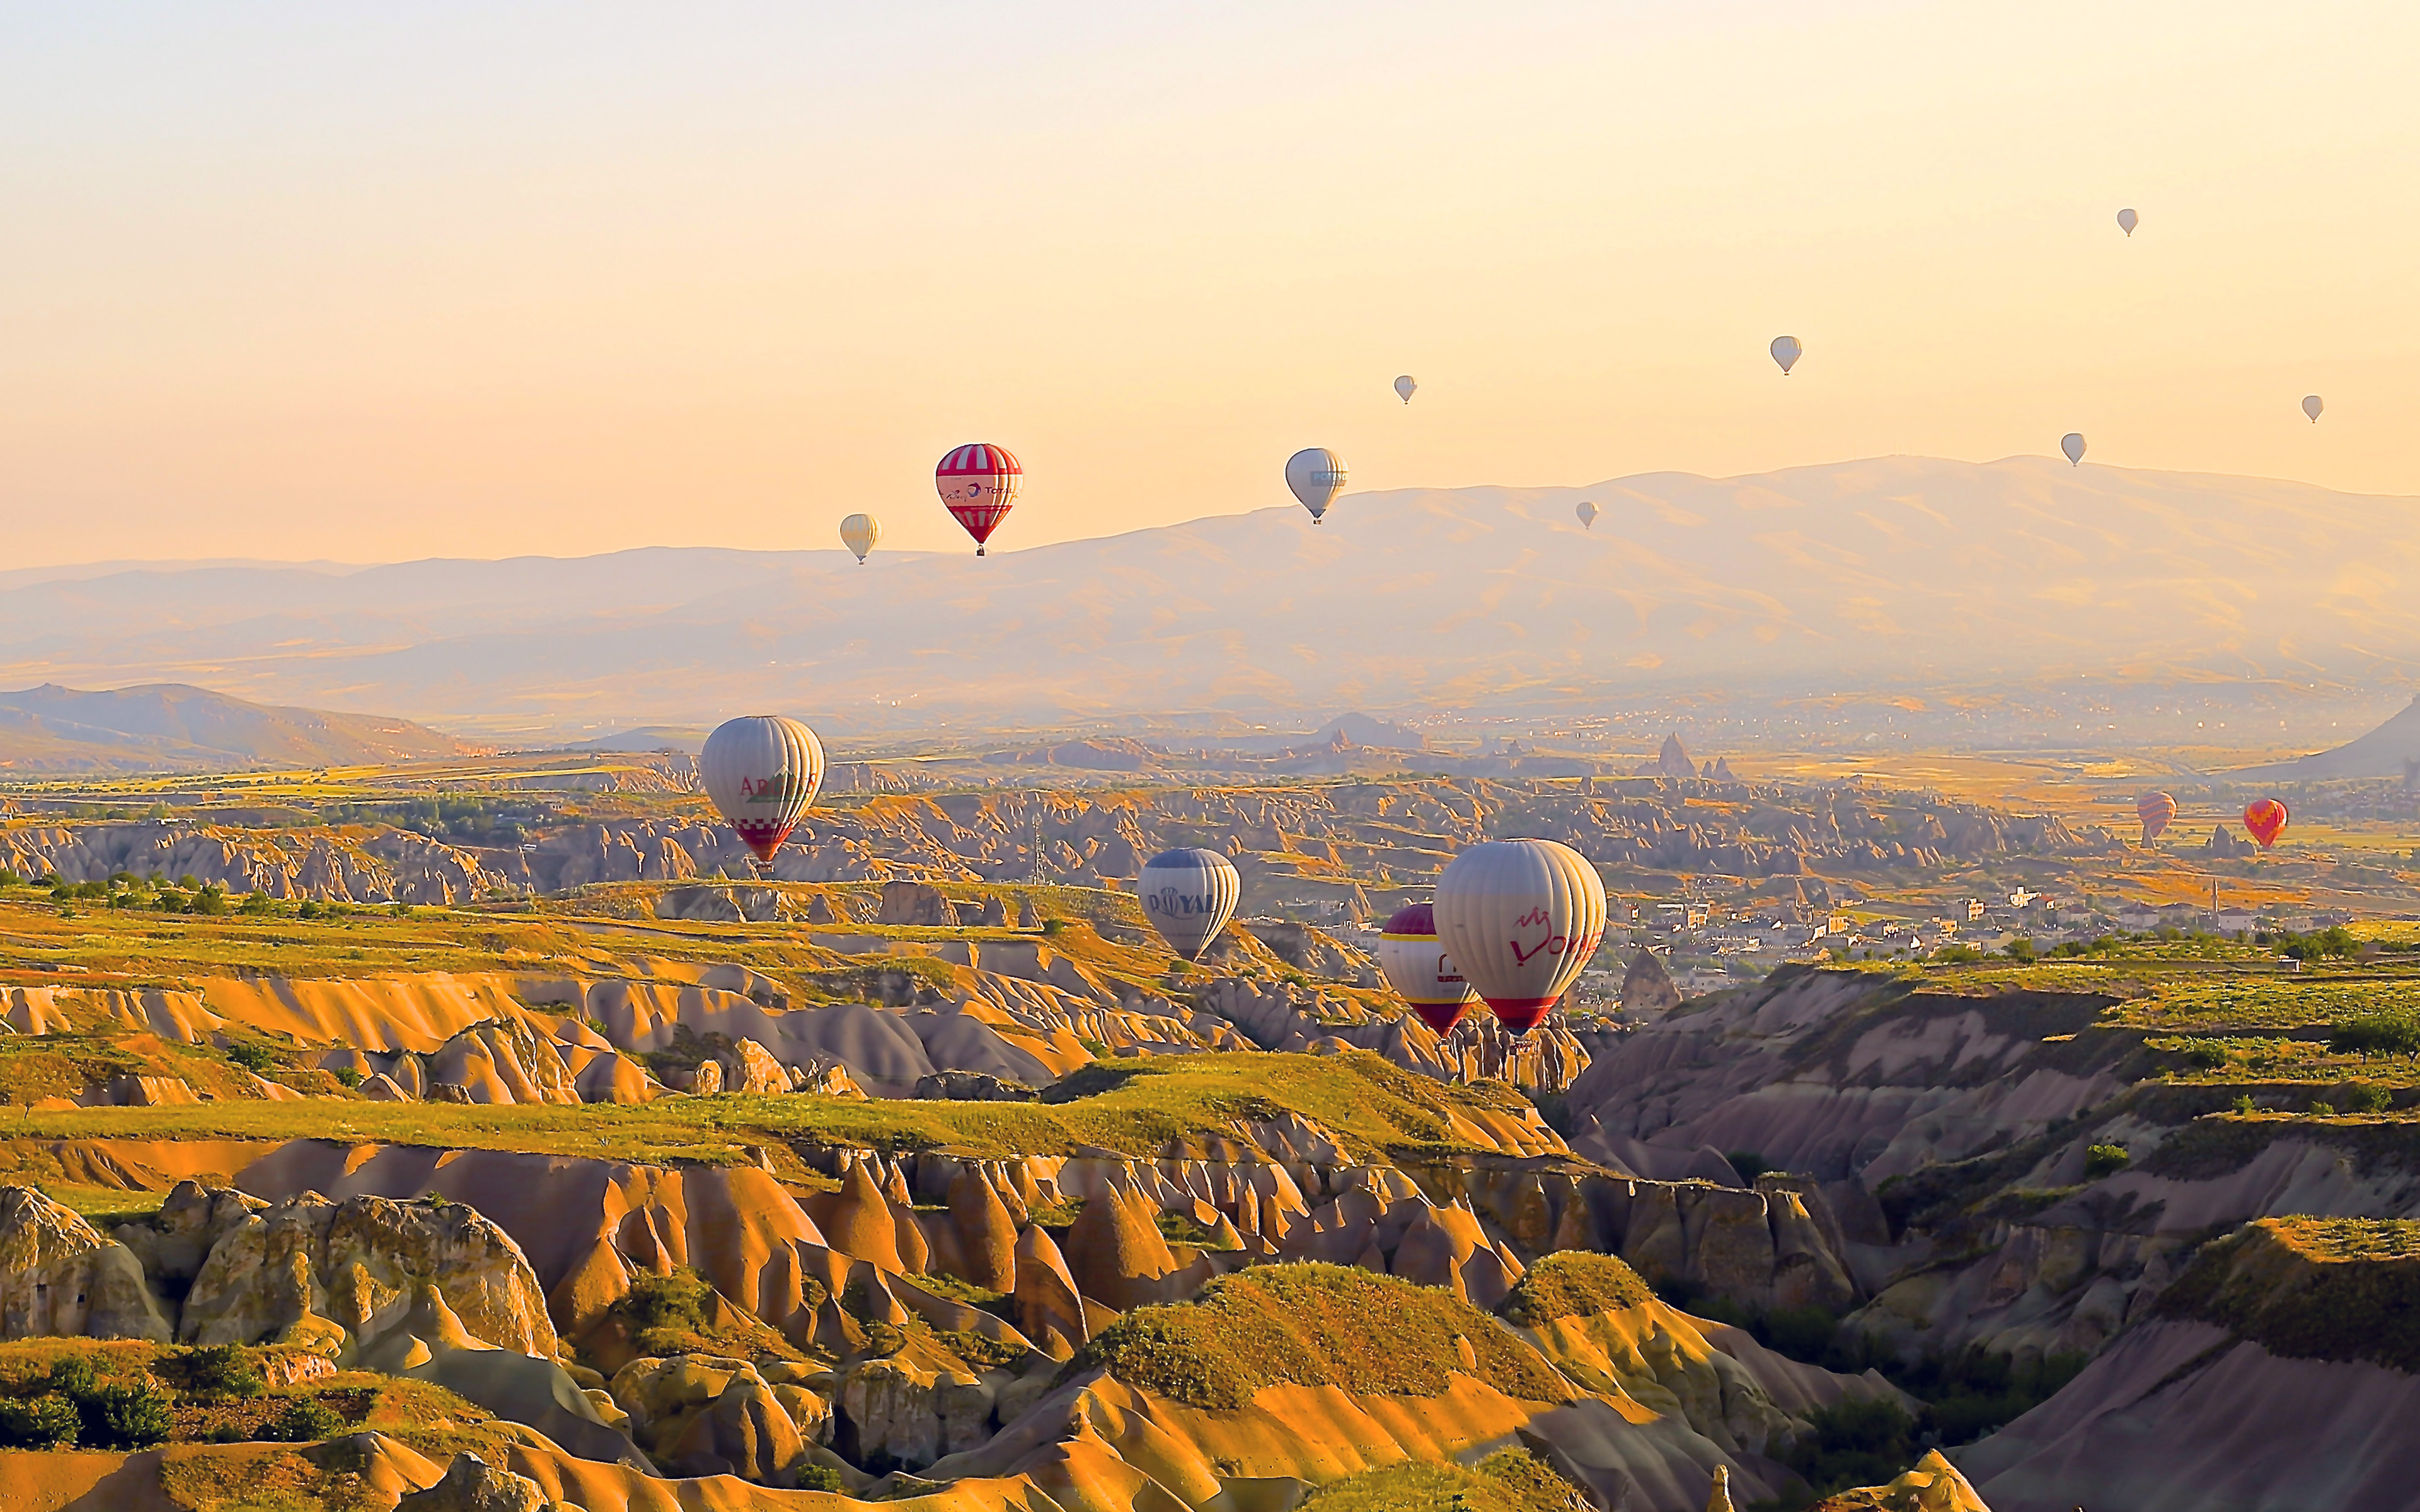 wallpaper for desktop, laptop | mx87-turkey-balloon-travel-mountain